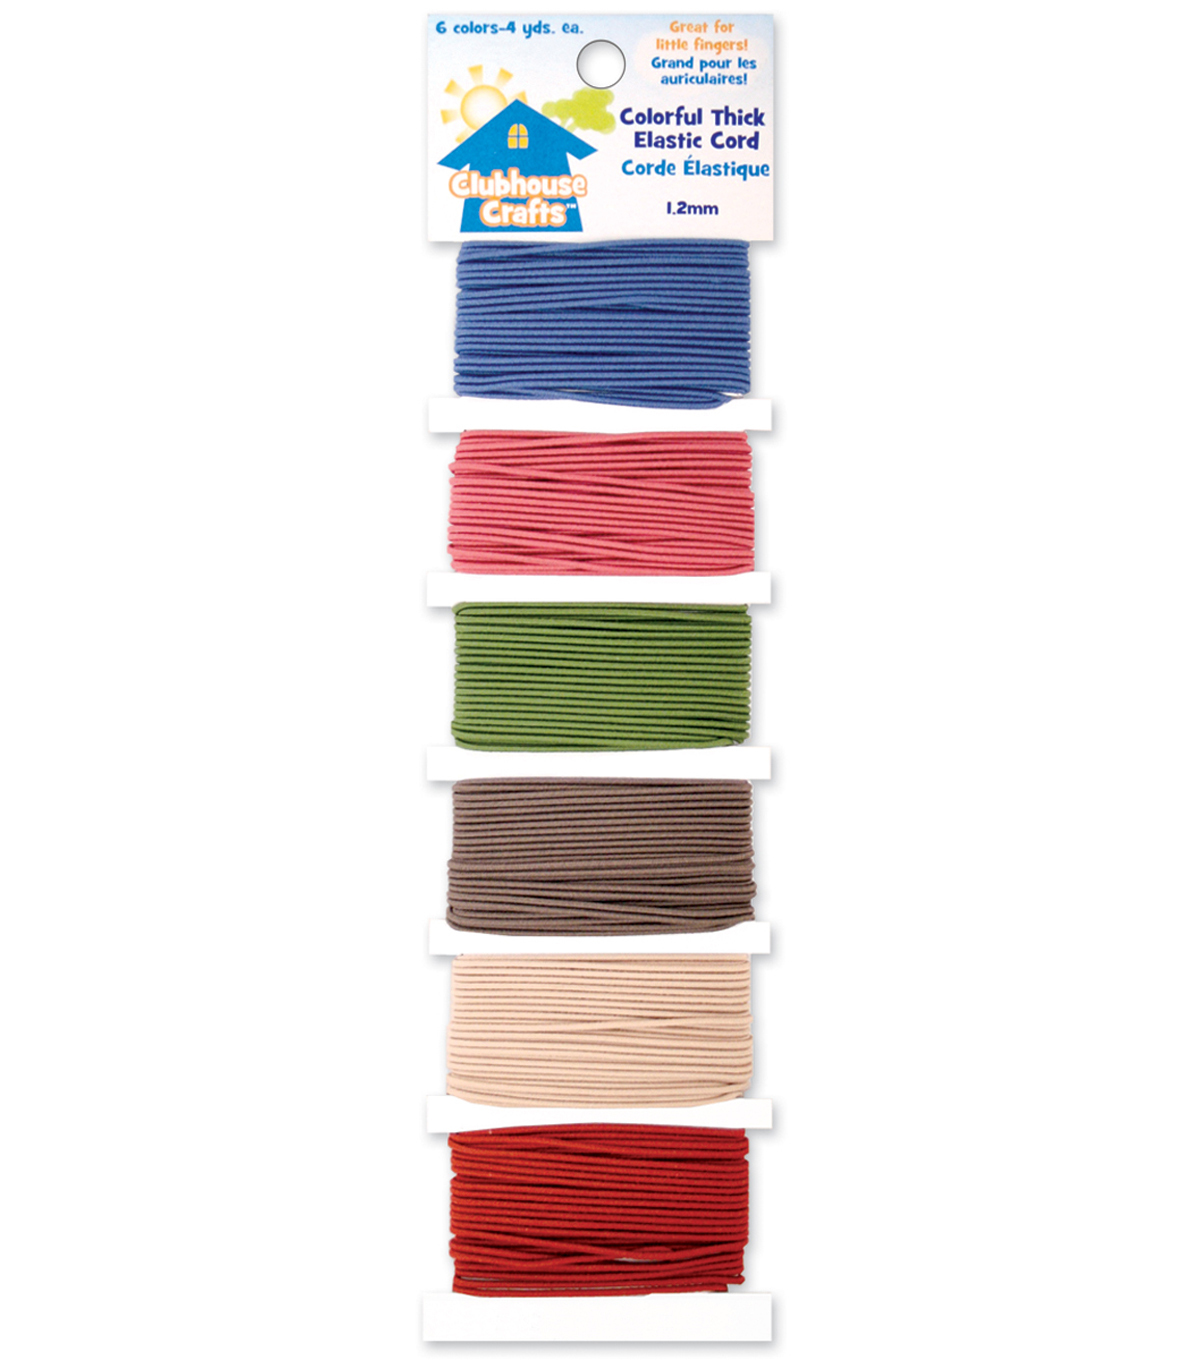 Sulyn Clubhouse Crafts-Colorful Thick Elastic Cord-6 Colors